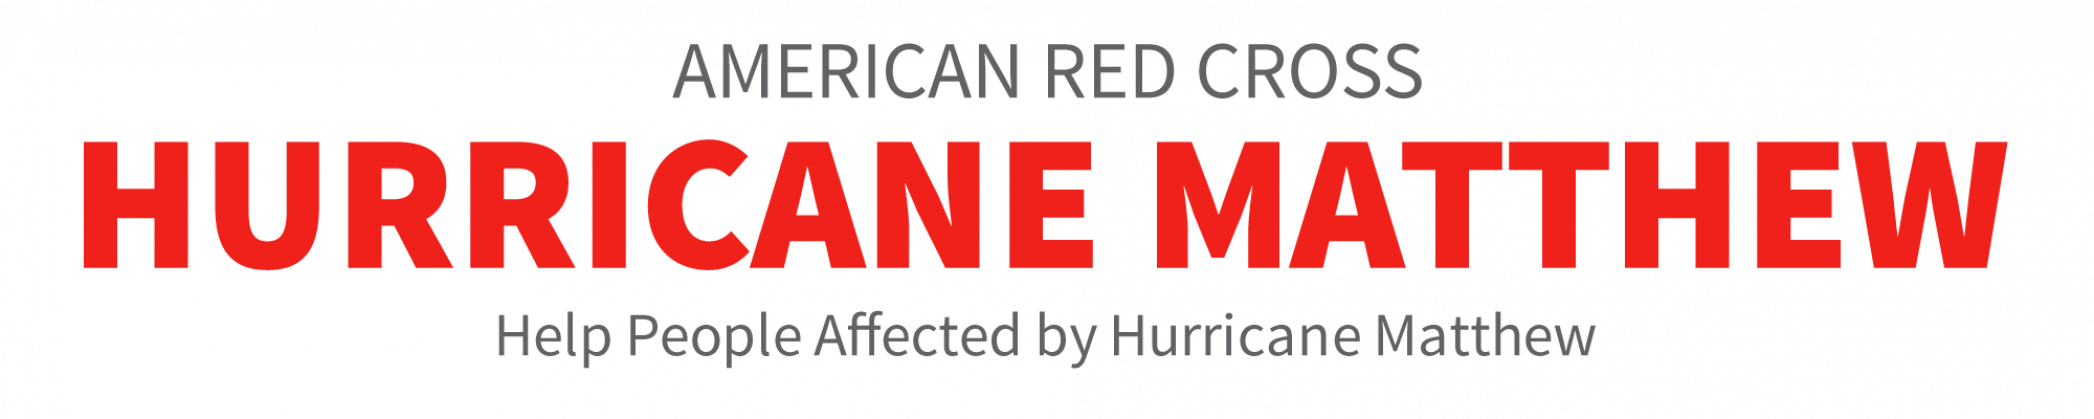 American red cross clipart image black and white download Famed American Red Cross Logo Clipart Image American Red Cross Logo ... image black and white download